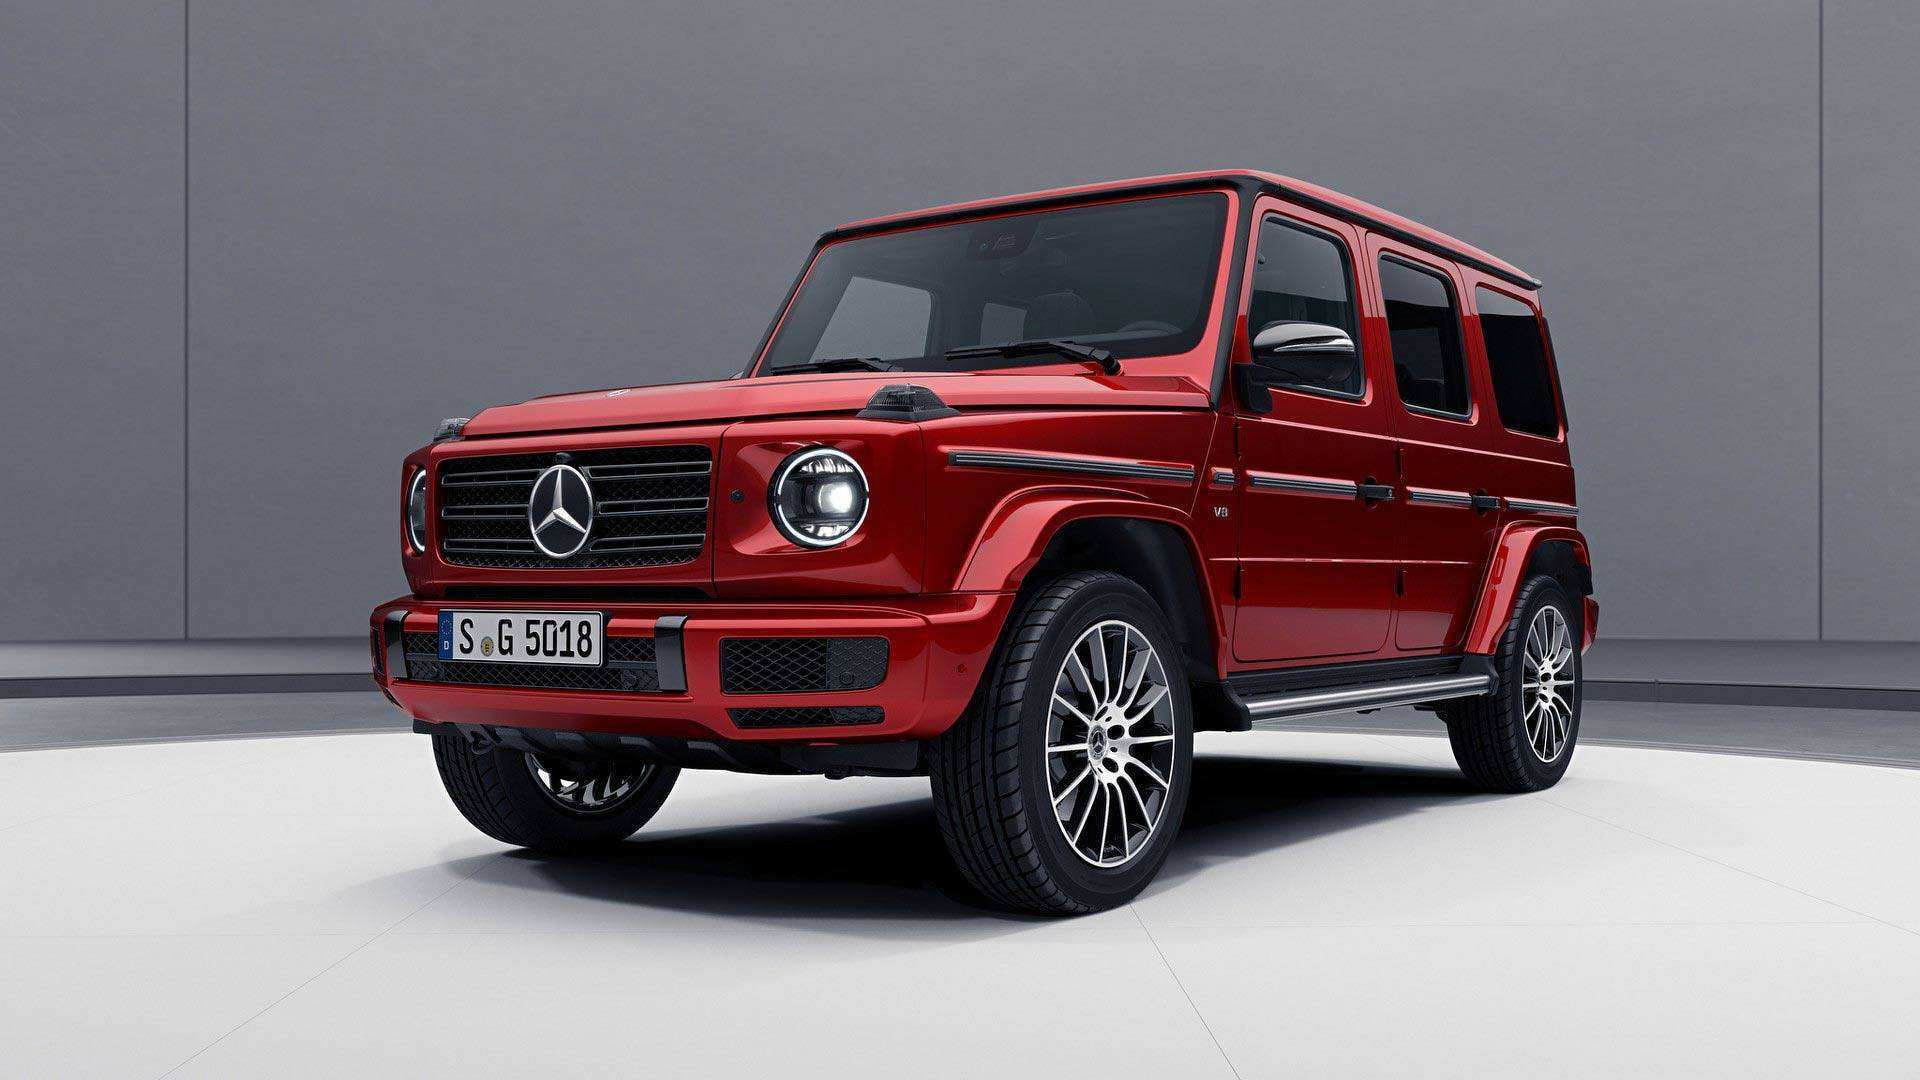 79 Gallery of 2019 Mercedes G Wagon For Sale Price Price and Review by 2019 Mercedes G Wagon For Sale Price